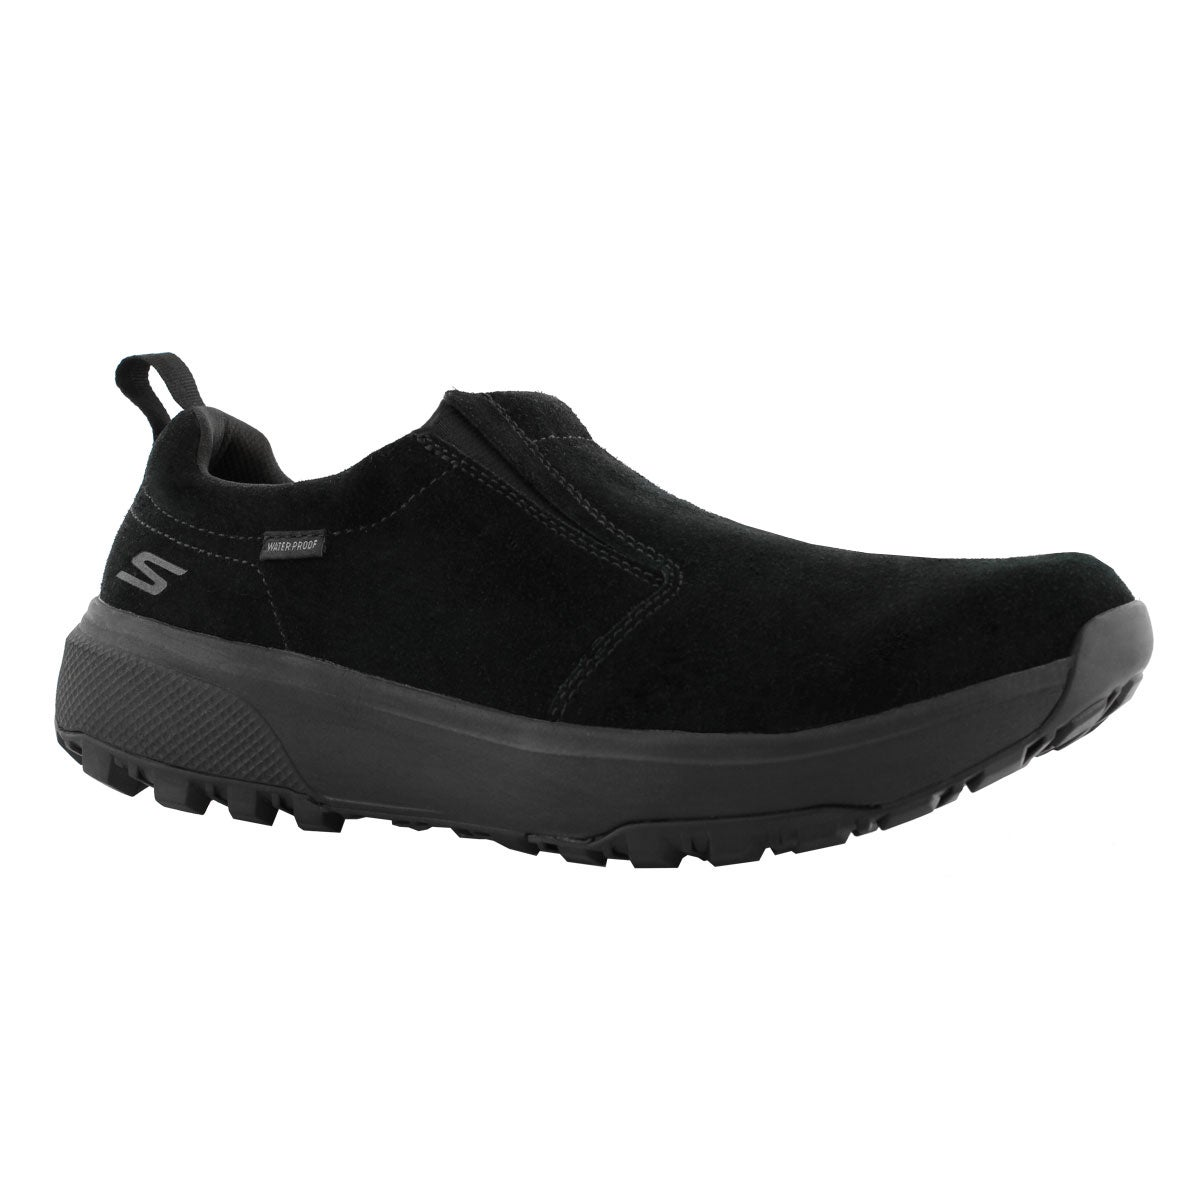 Mns On-The-Go Outdoors Ultra blk slipon